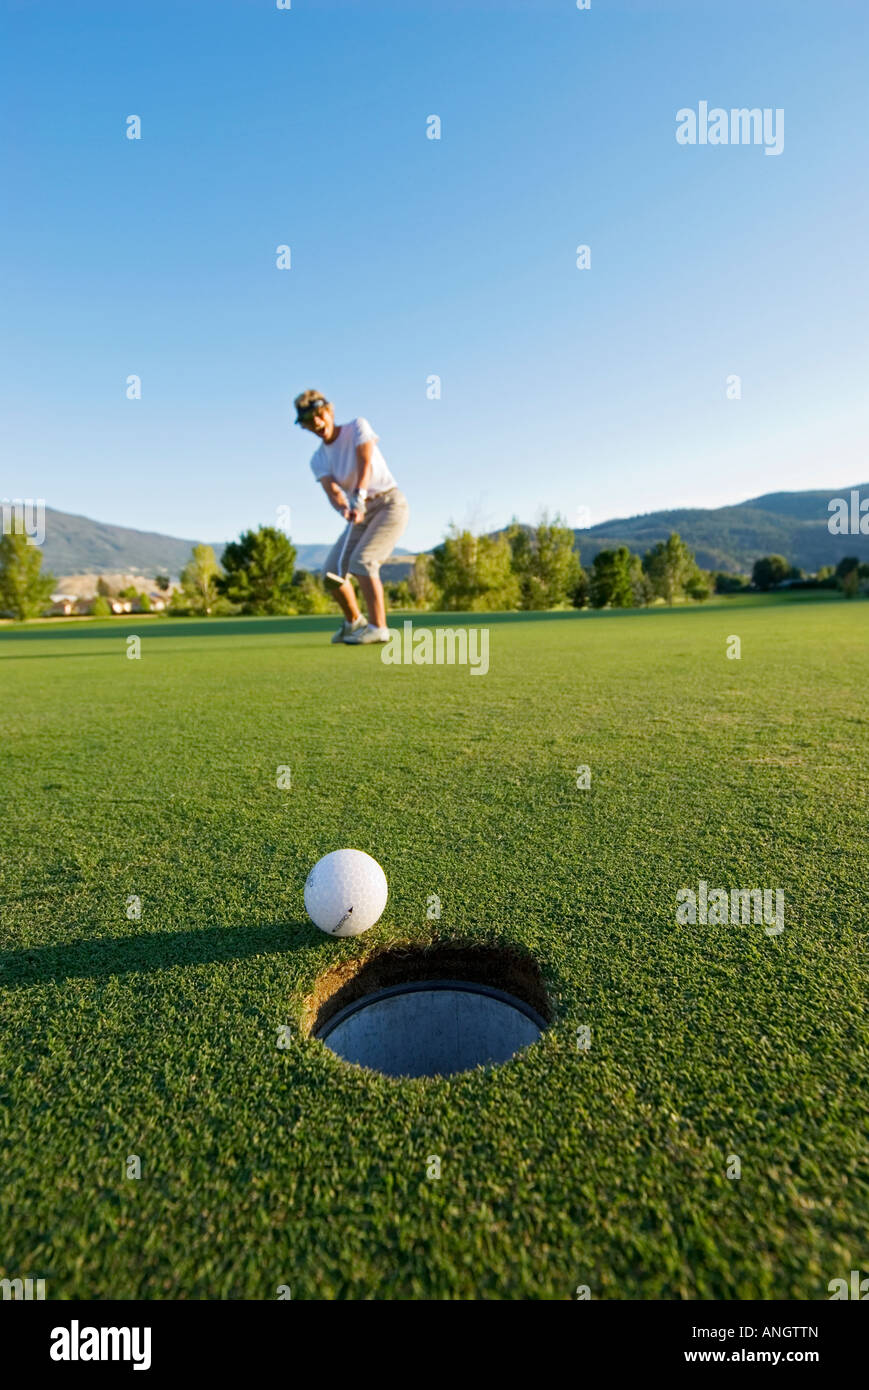 A lady golfer watches her ball with anticipation just before it drops into the cup, on a course near Kamloops, British - Stock Image